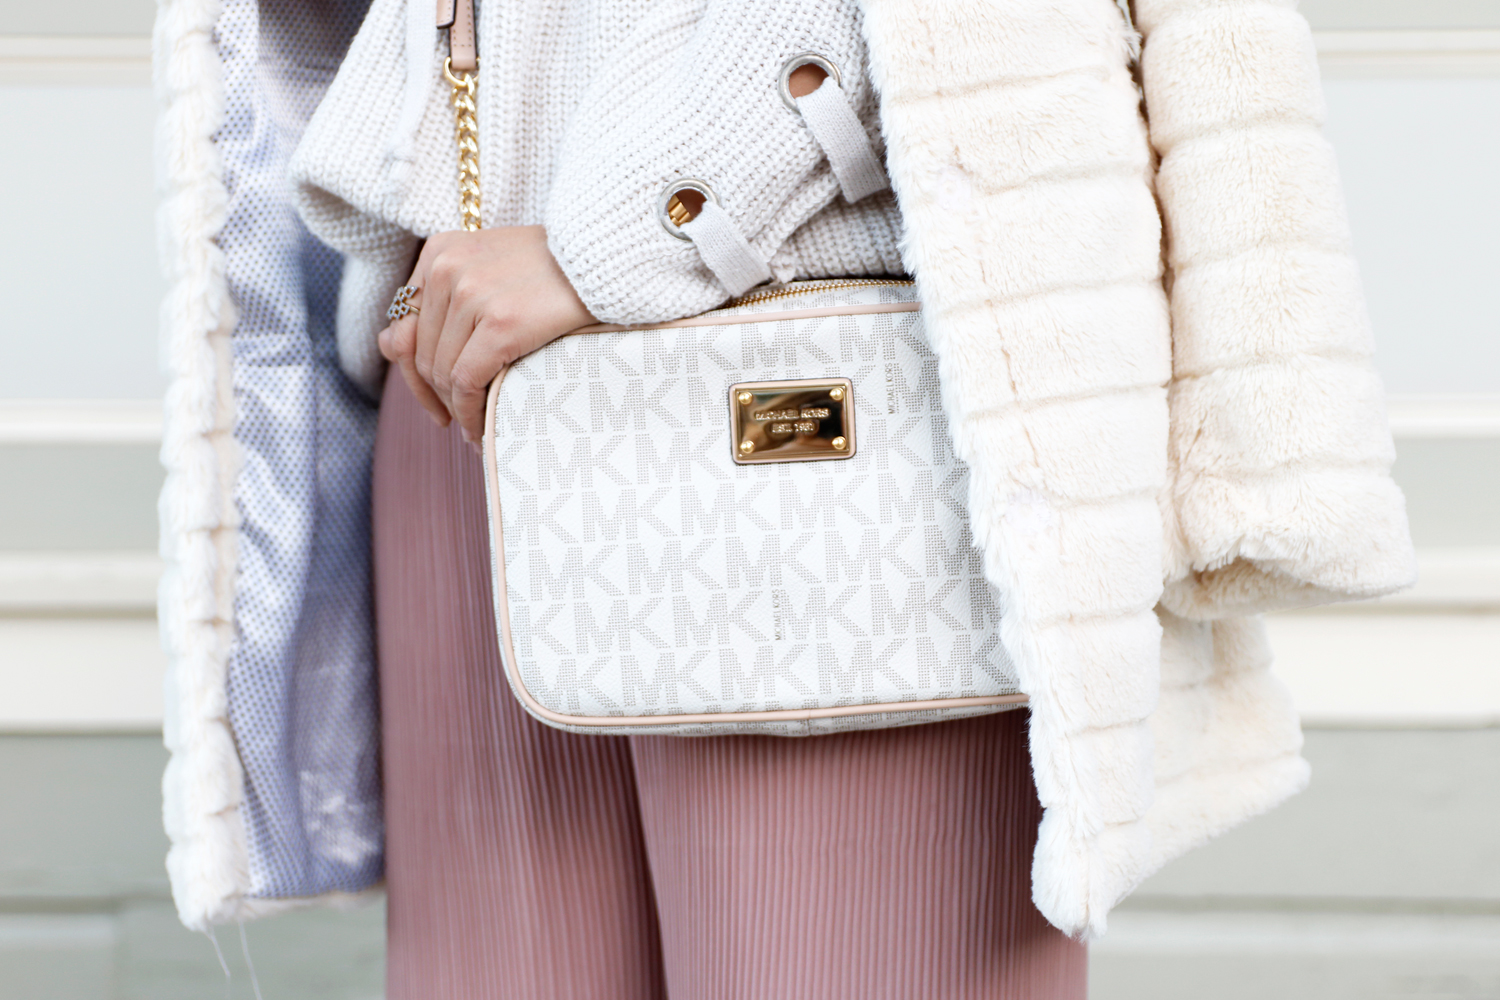 02holiday-neutral-pastel-michaelkors-fur-sf-sanfrancisco-fashion-style